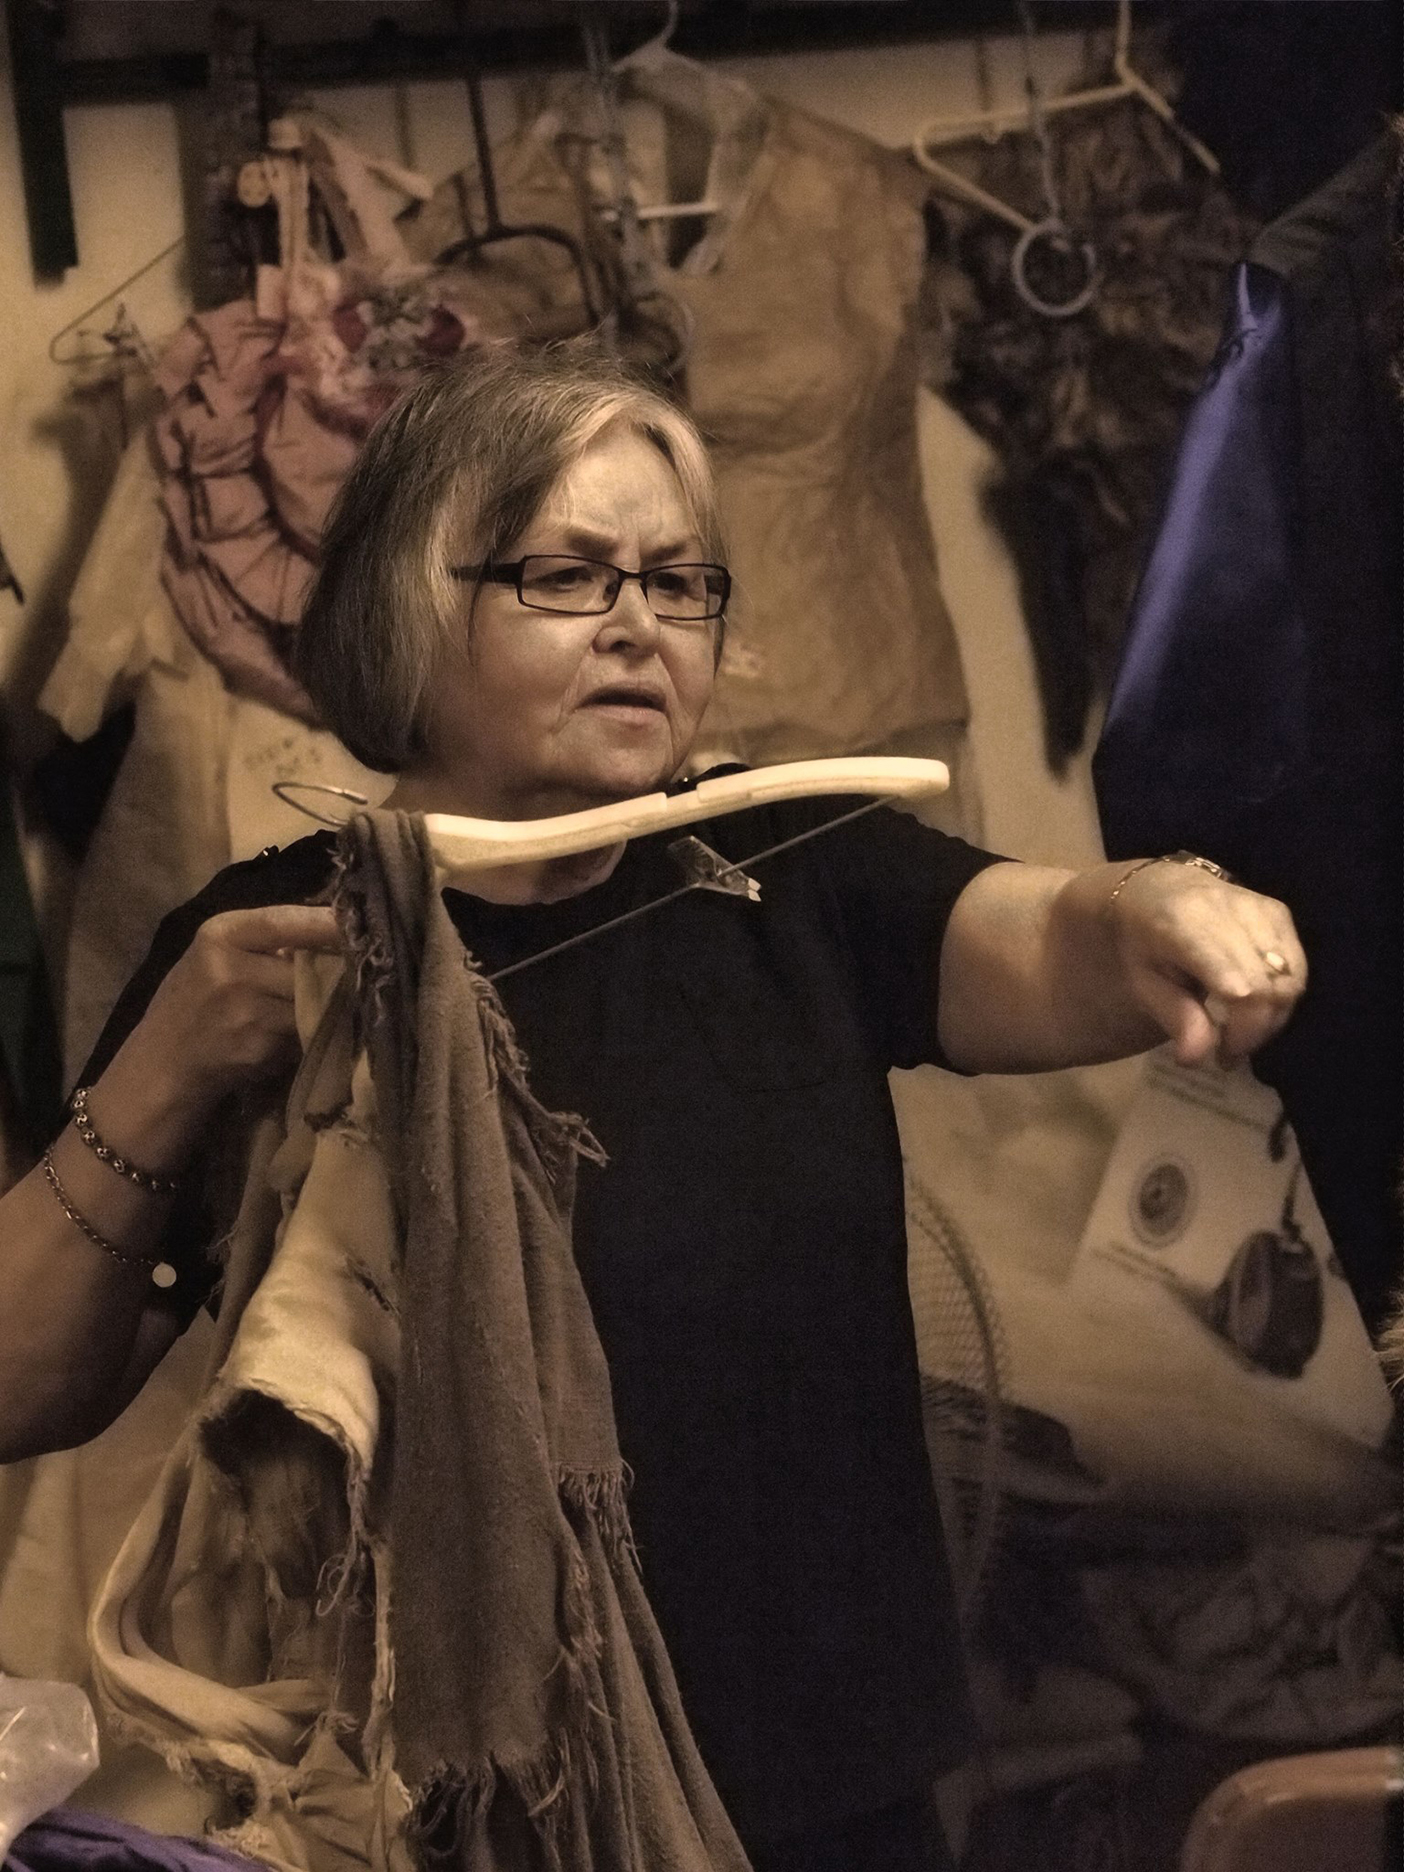 a woman on stage holding a hanger